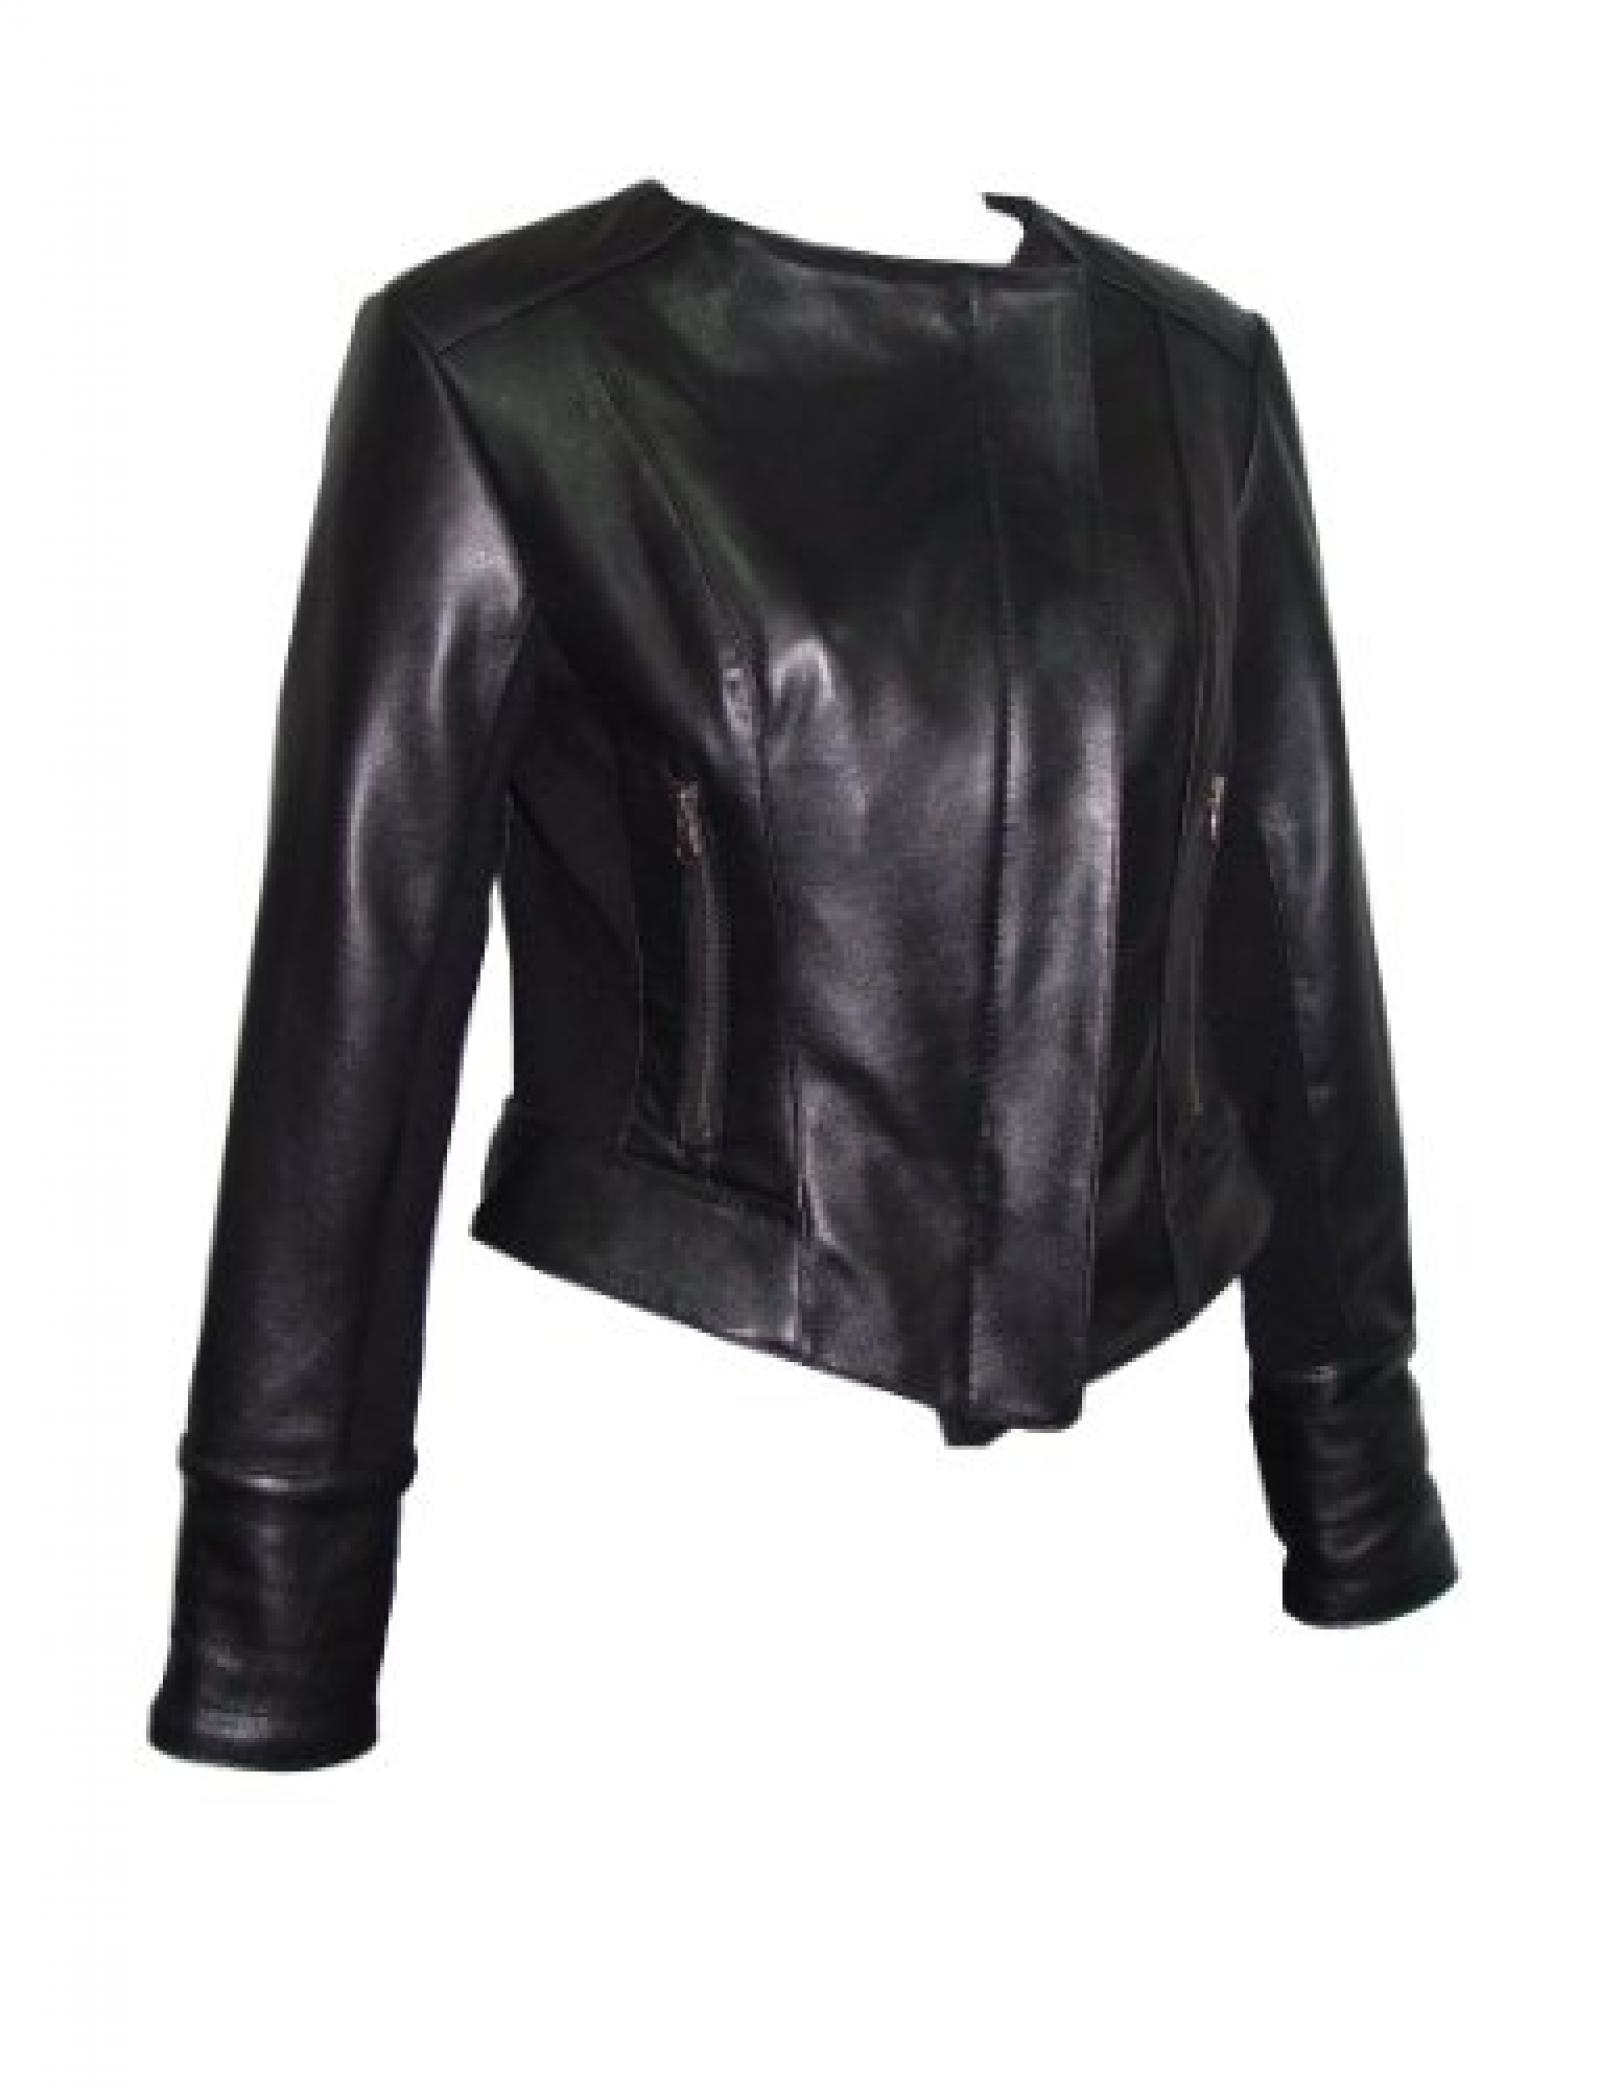 Nettailor FREE tailoring Women 4070 Leather Moto Jacket Collarless